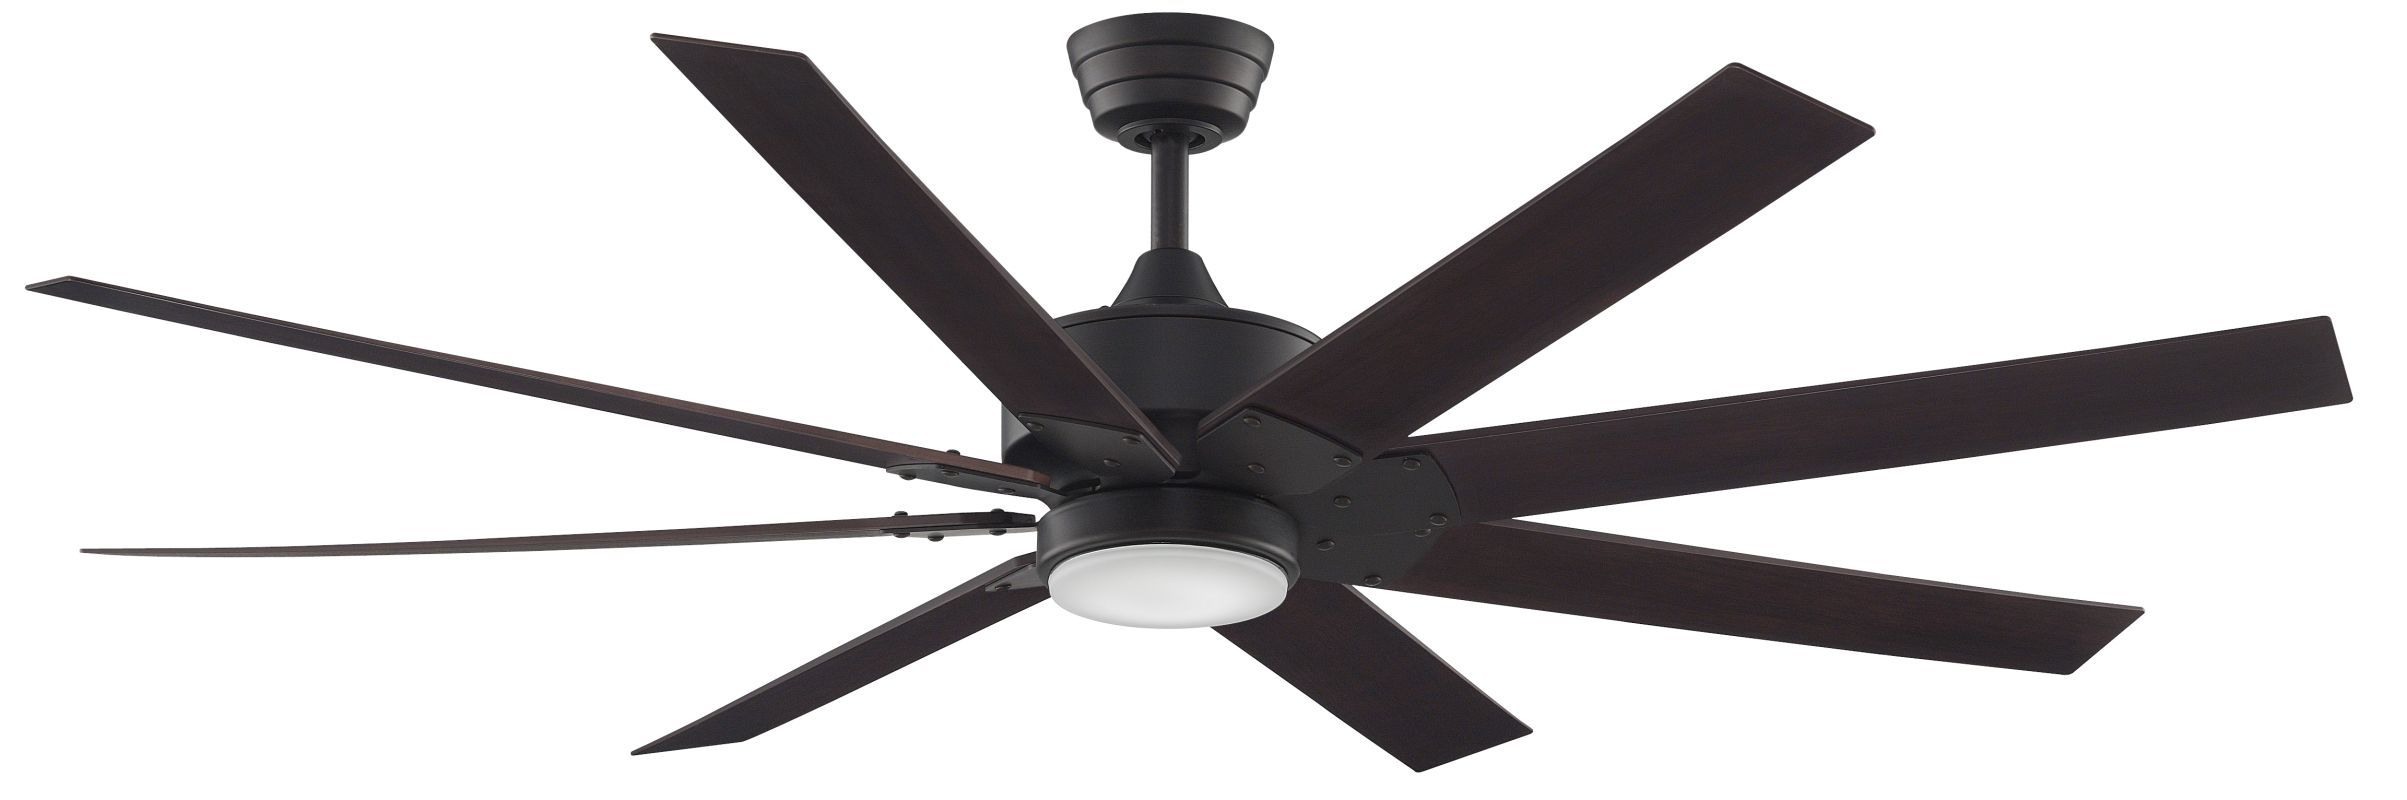 Large Indoor Fans Fanimation Fpd7916 63